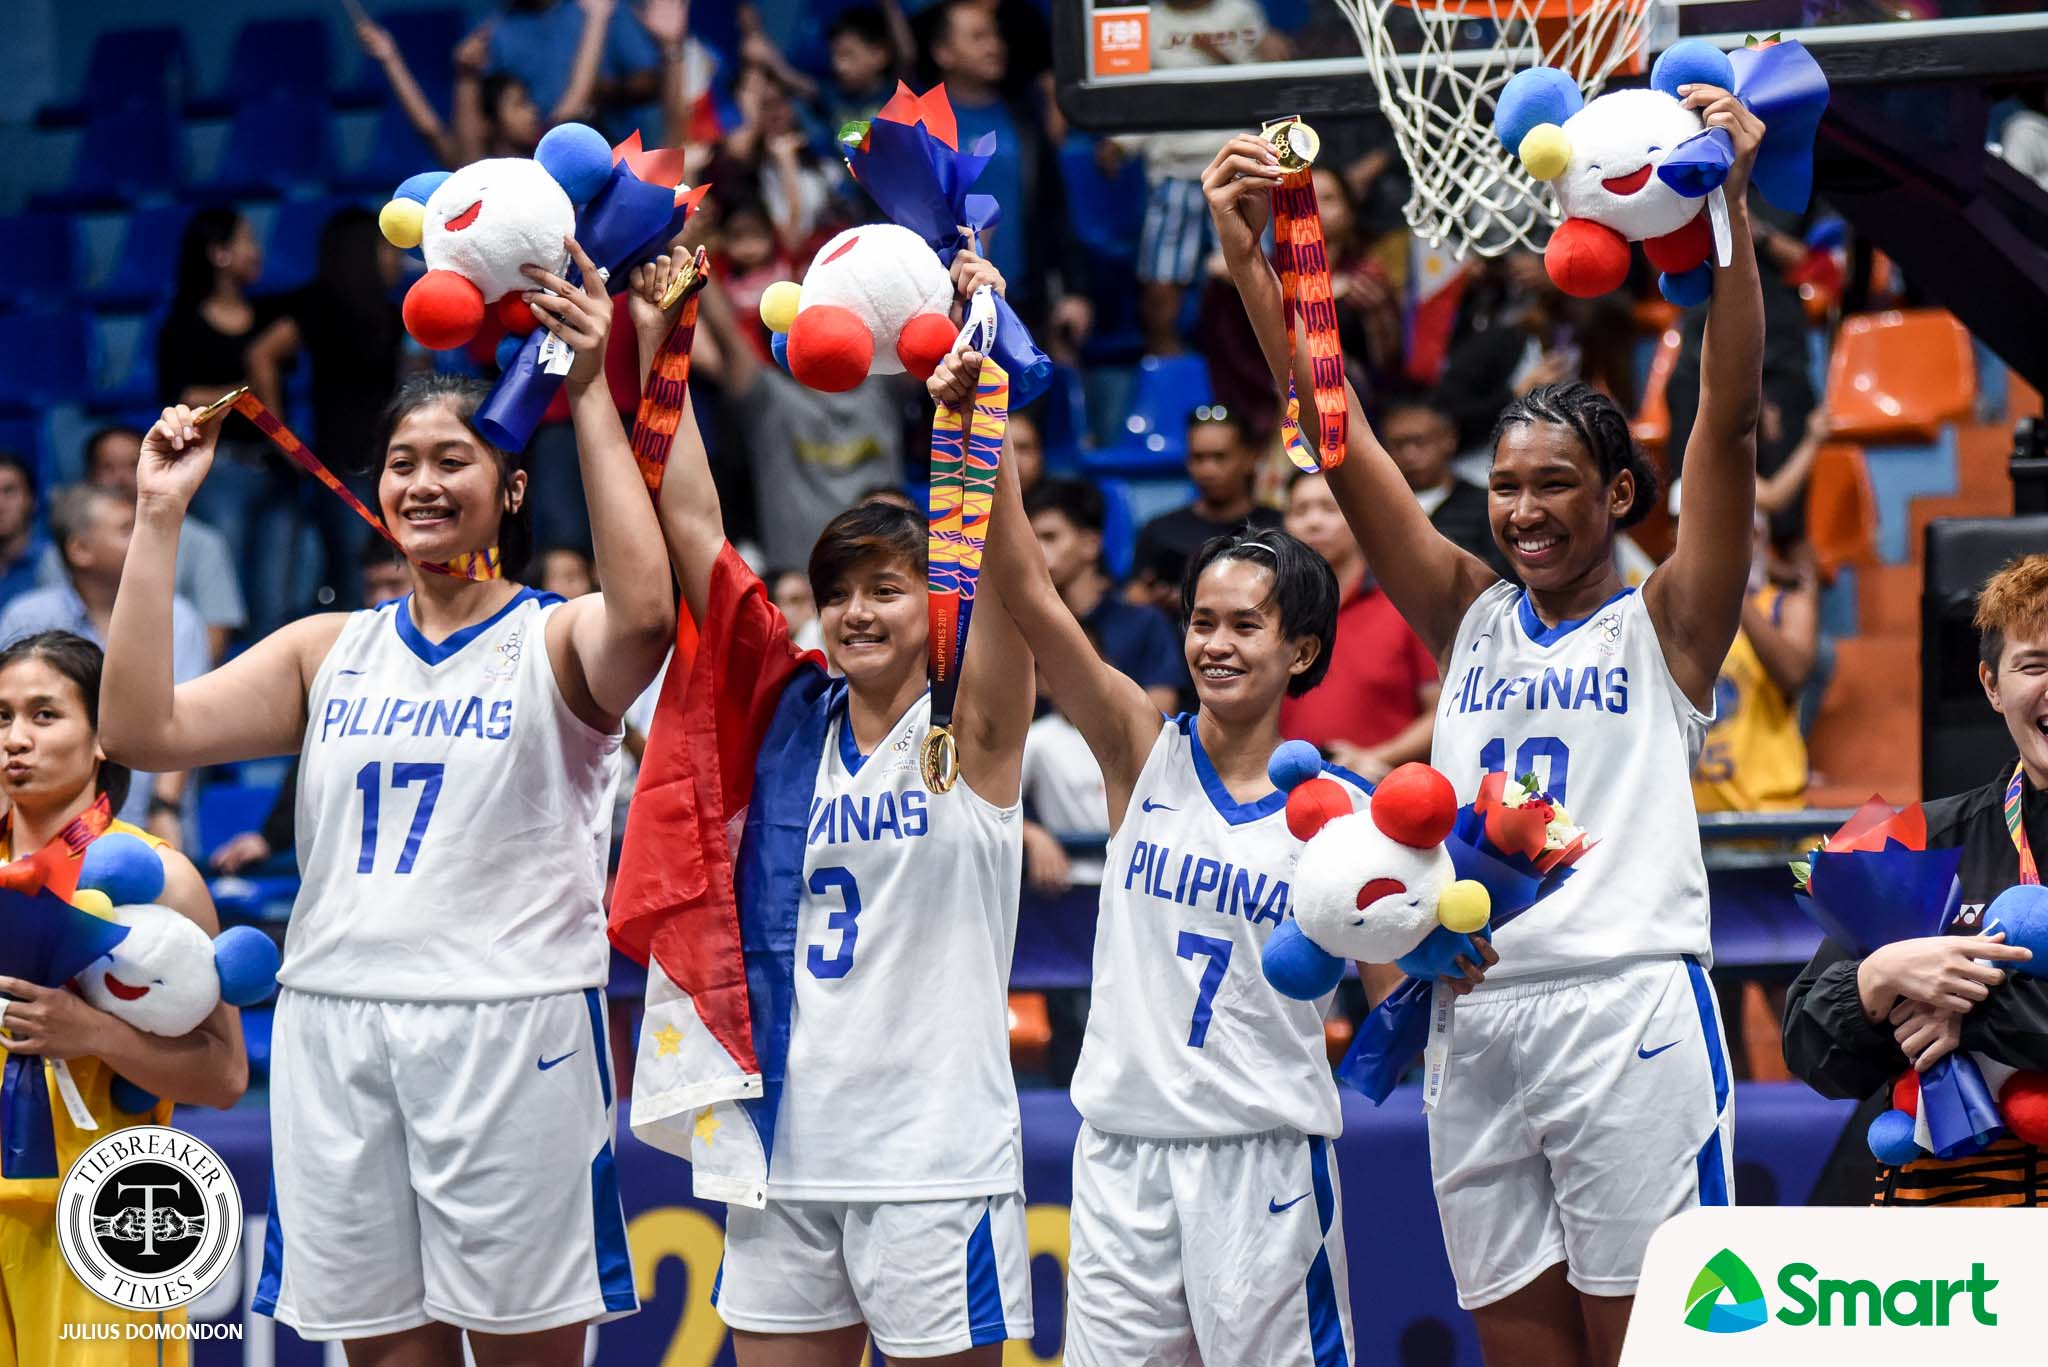 Tiebreaker Times SEA Games gold was not just for country, says Janine Pontejos 2019 SEA Games 3x3 Basketball Gilas Pilipinas News  Janine Pontejos Gilas Pilipinas Women Dante Alinsunurin 2019 SEA Games - 3x3 Basketball 2019 SEA Games